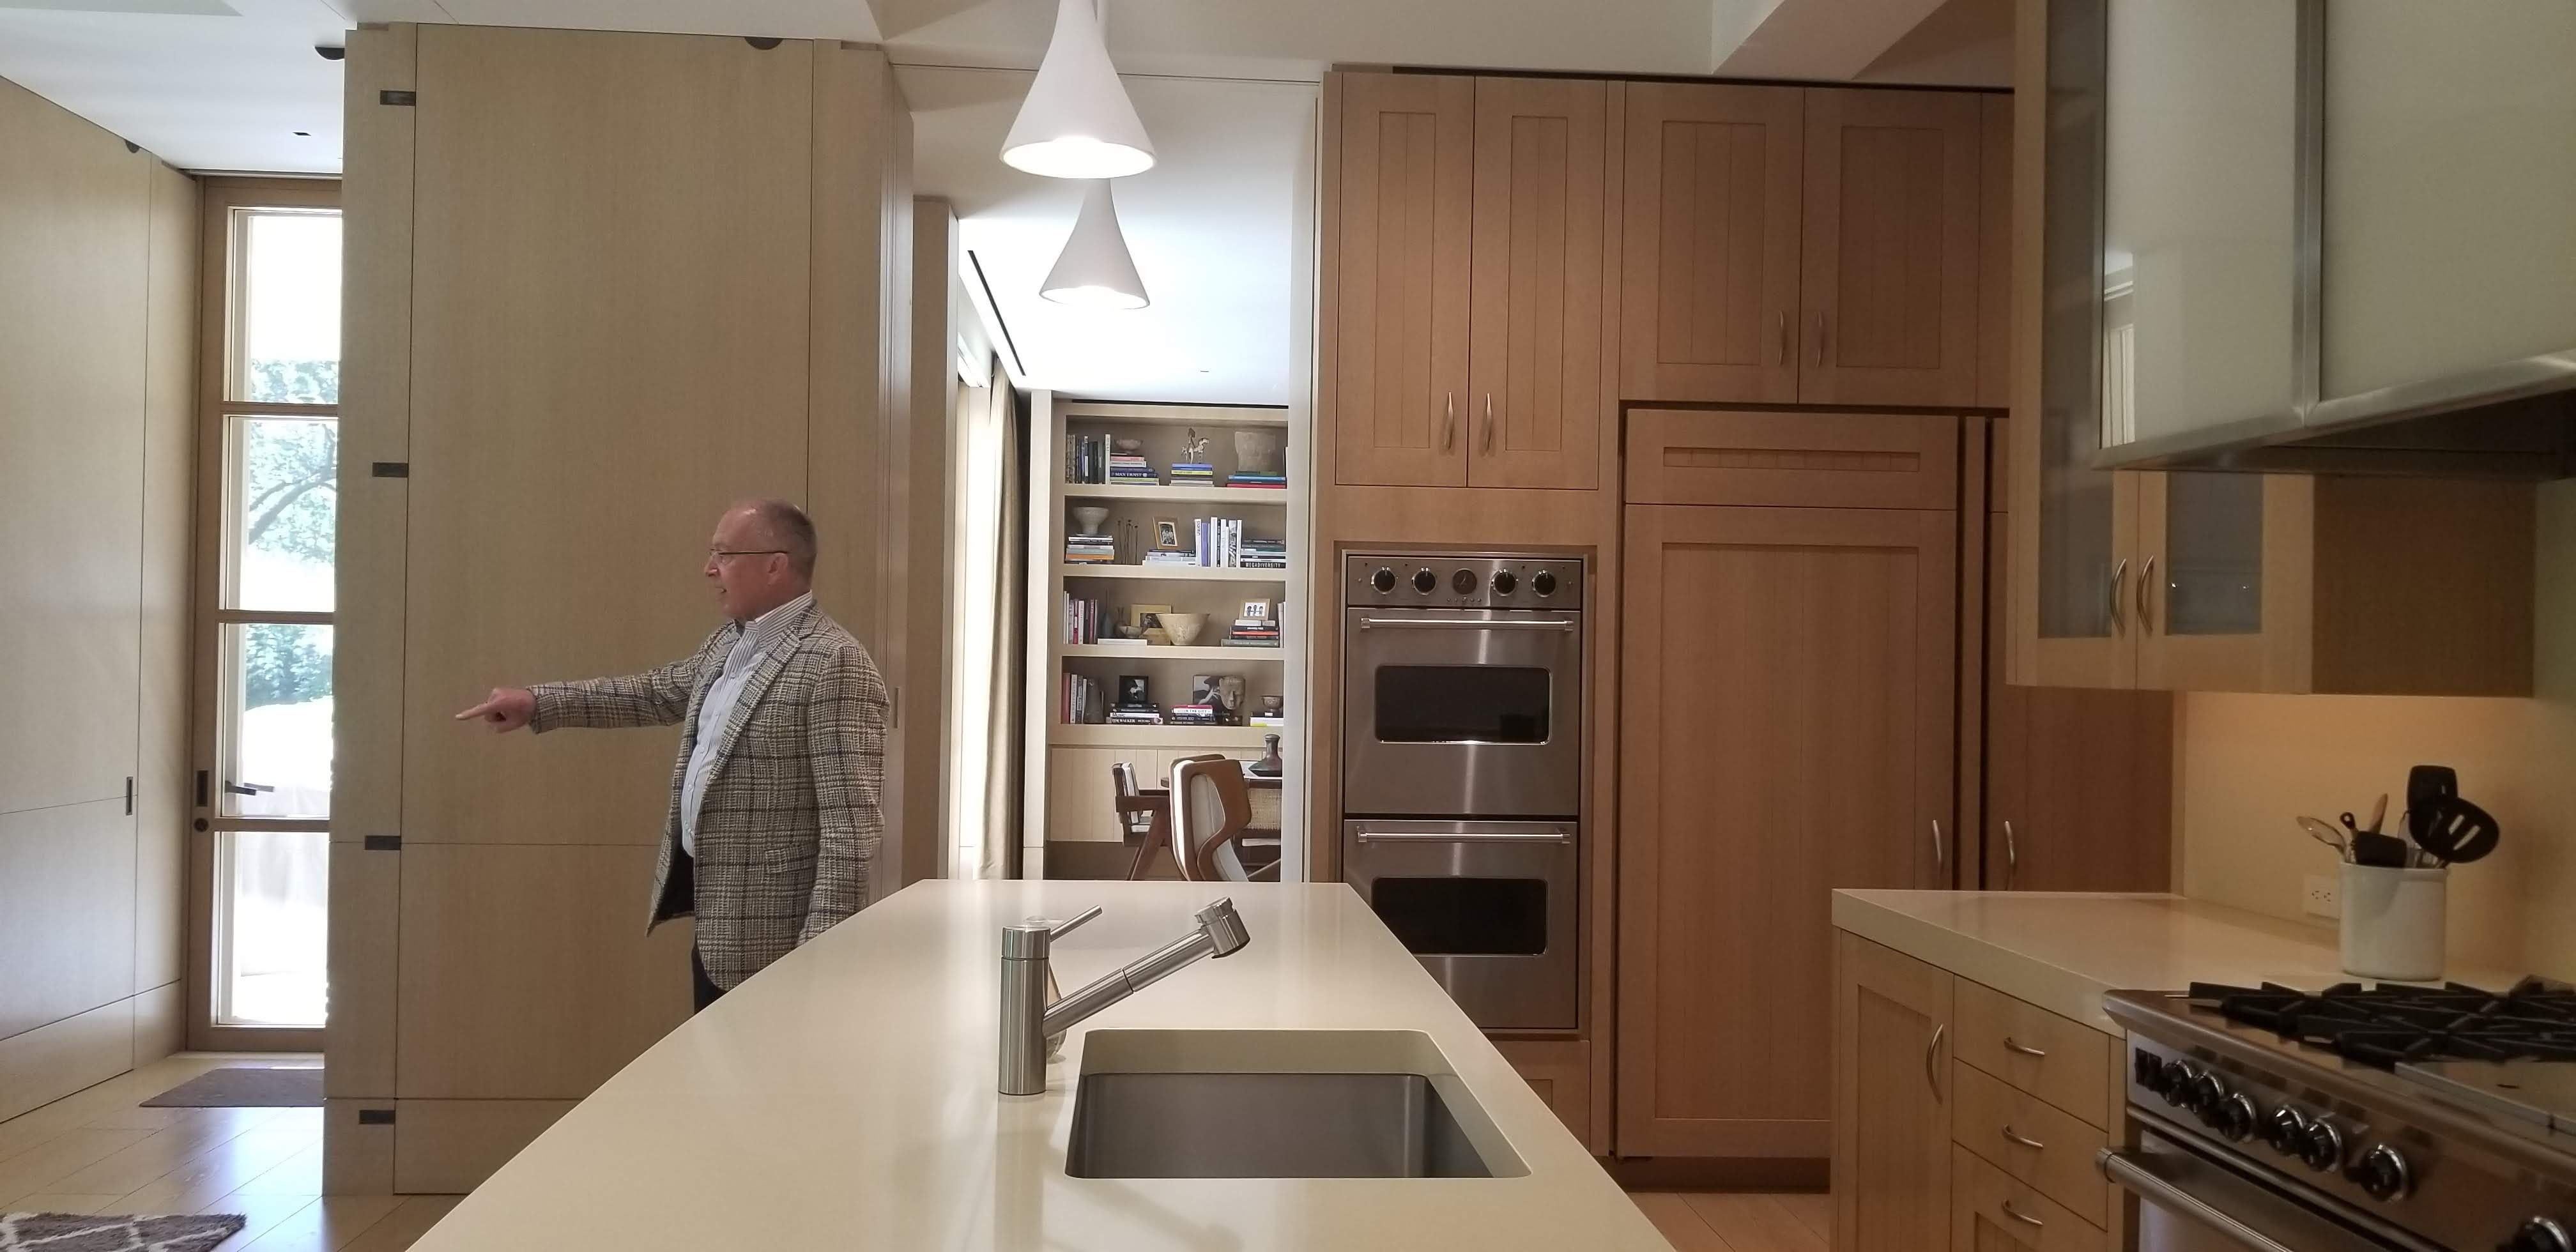 Kitchen Kompact S Glenwood Beech Cabinetry Flat Panel Cabinets Kitchen Dad S Kitchen